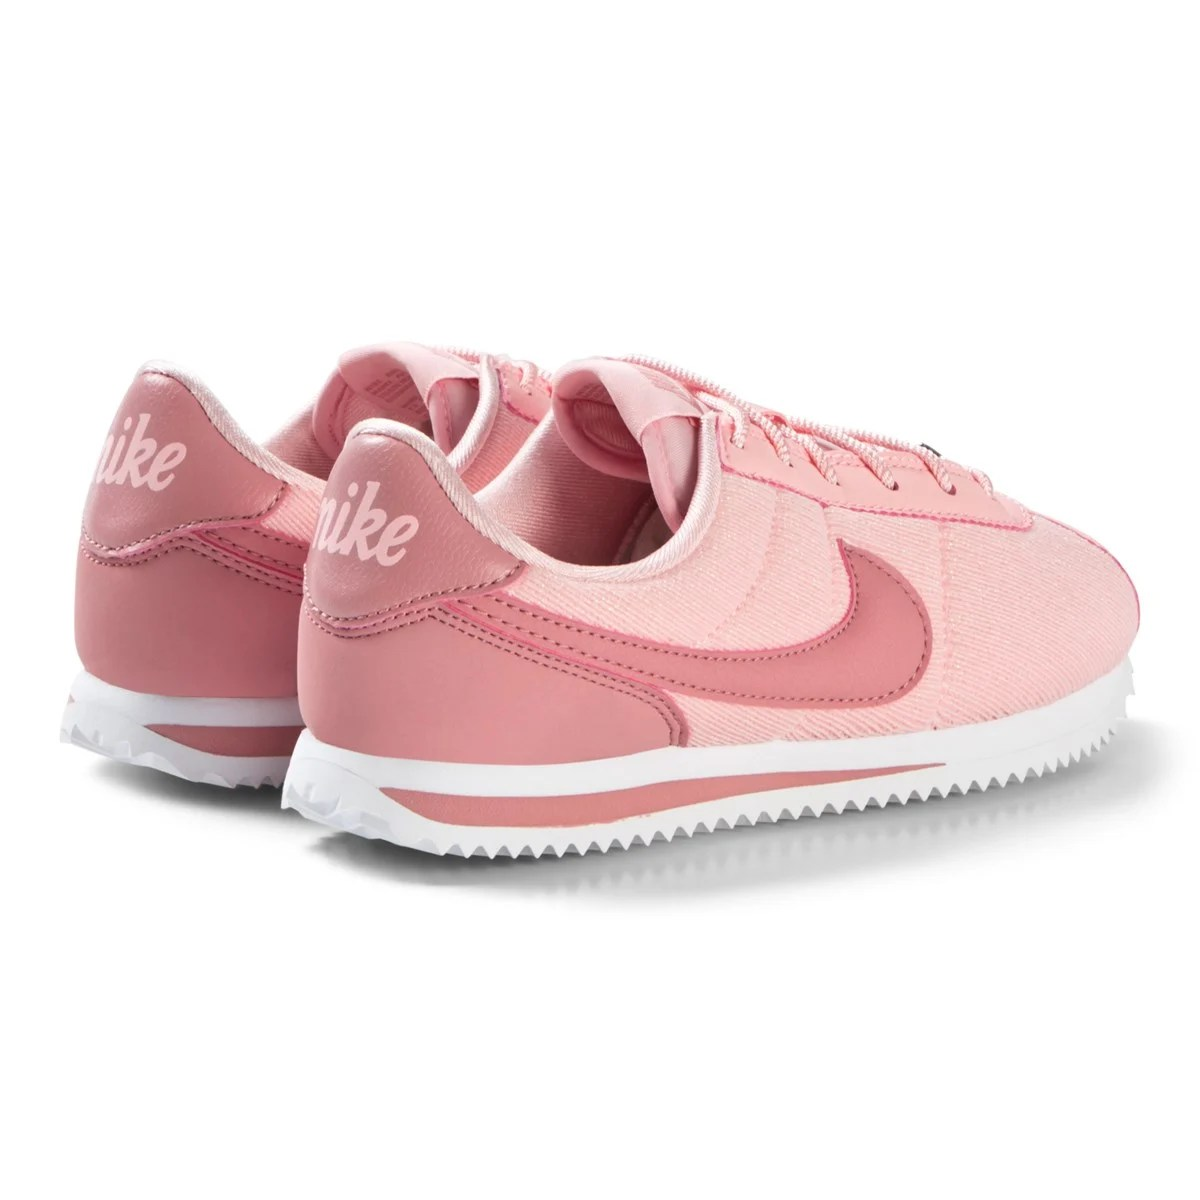 Newborn Car Seat Accessories Nike Pink Nike Cortez Basic Text Se Shoe Babyshop